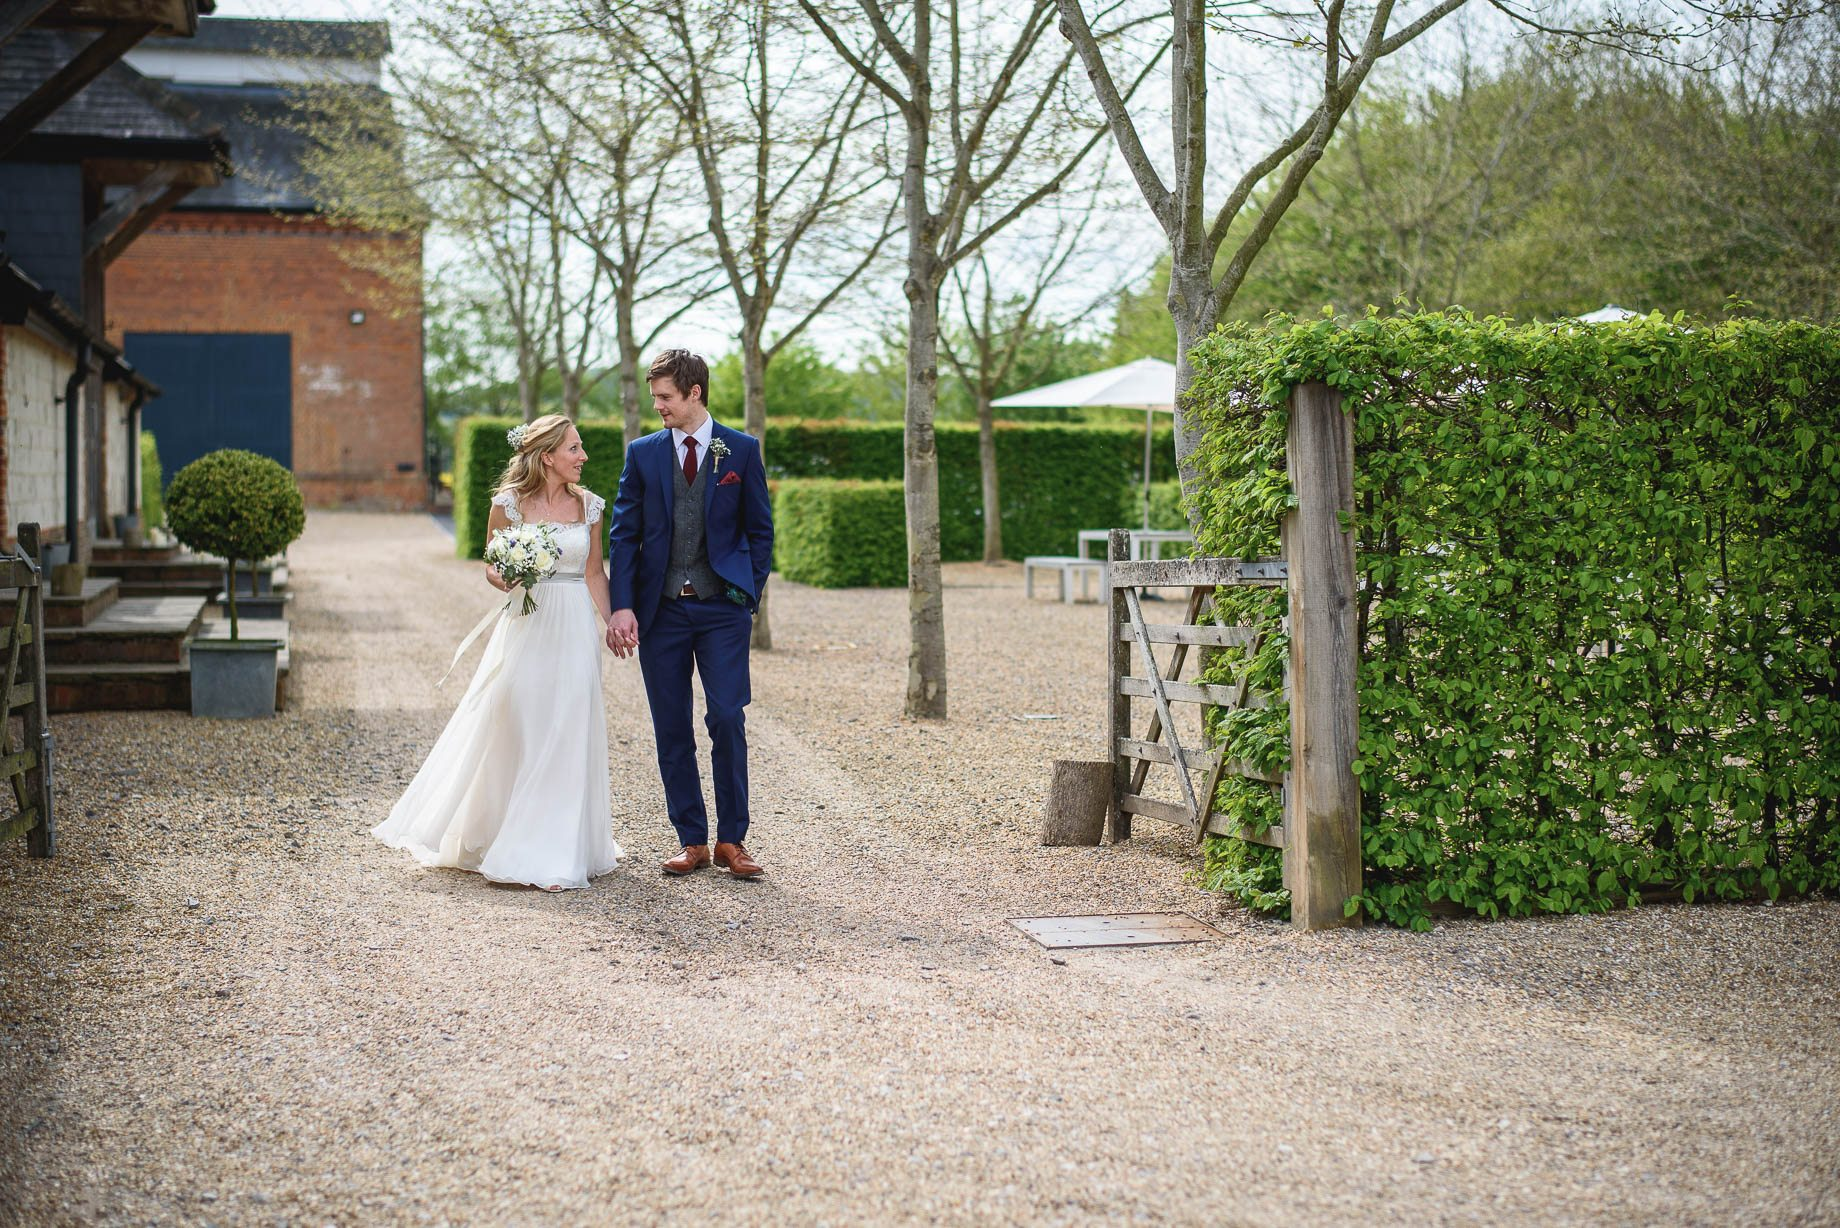 Bury Court Barn wedding photography by Guy Collier - Heather and Pat (93 of 170)